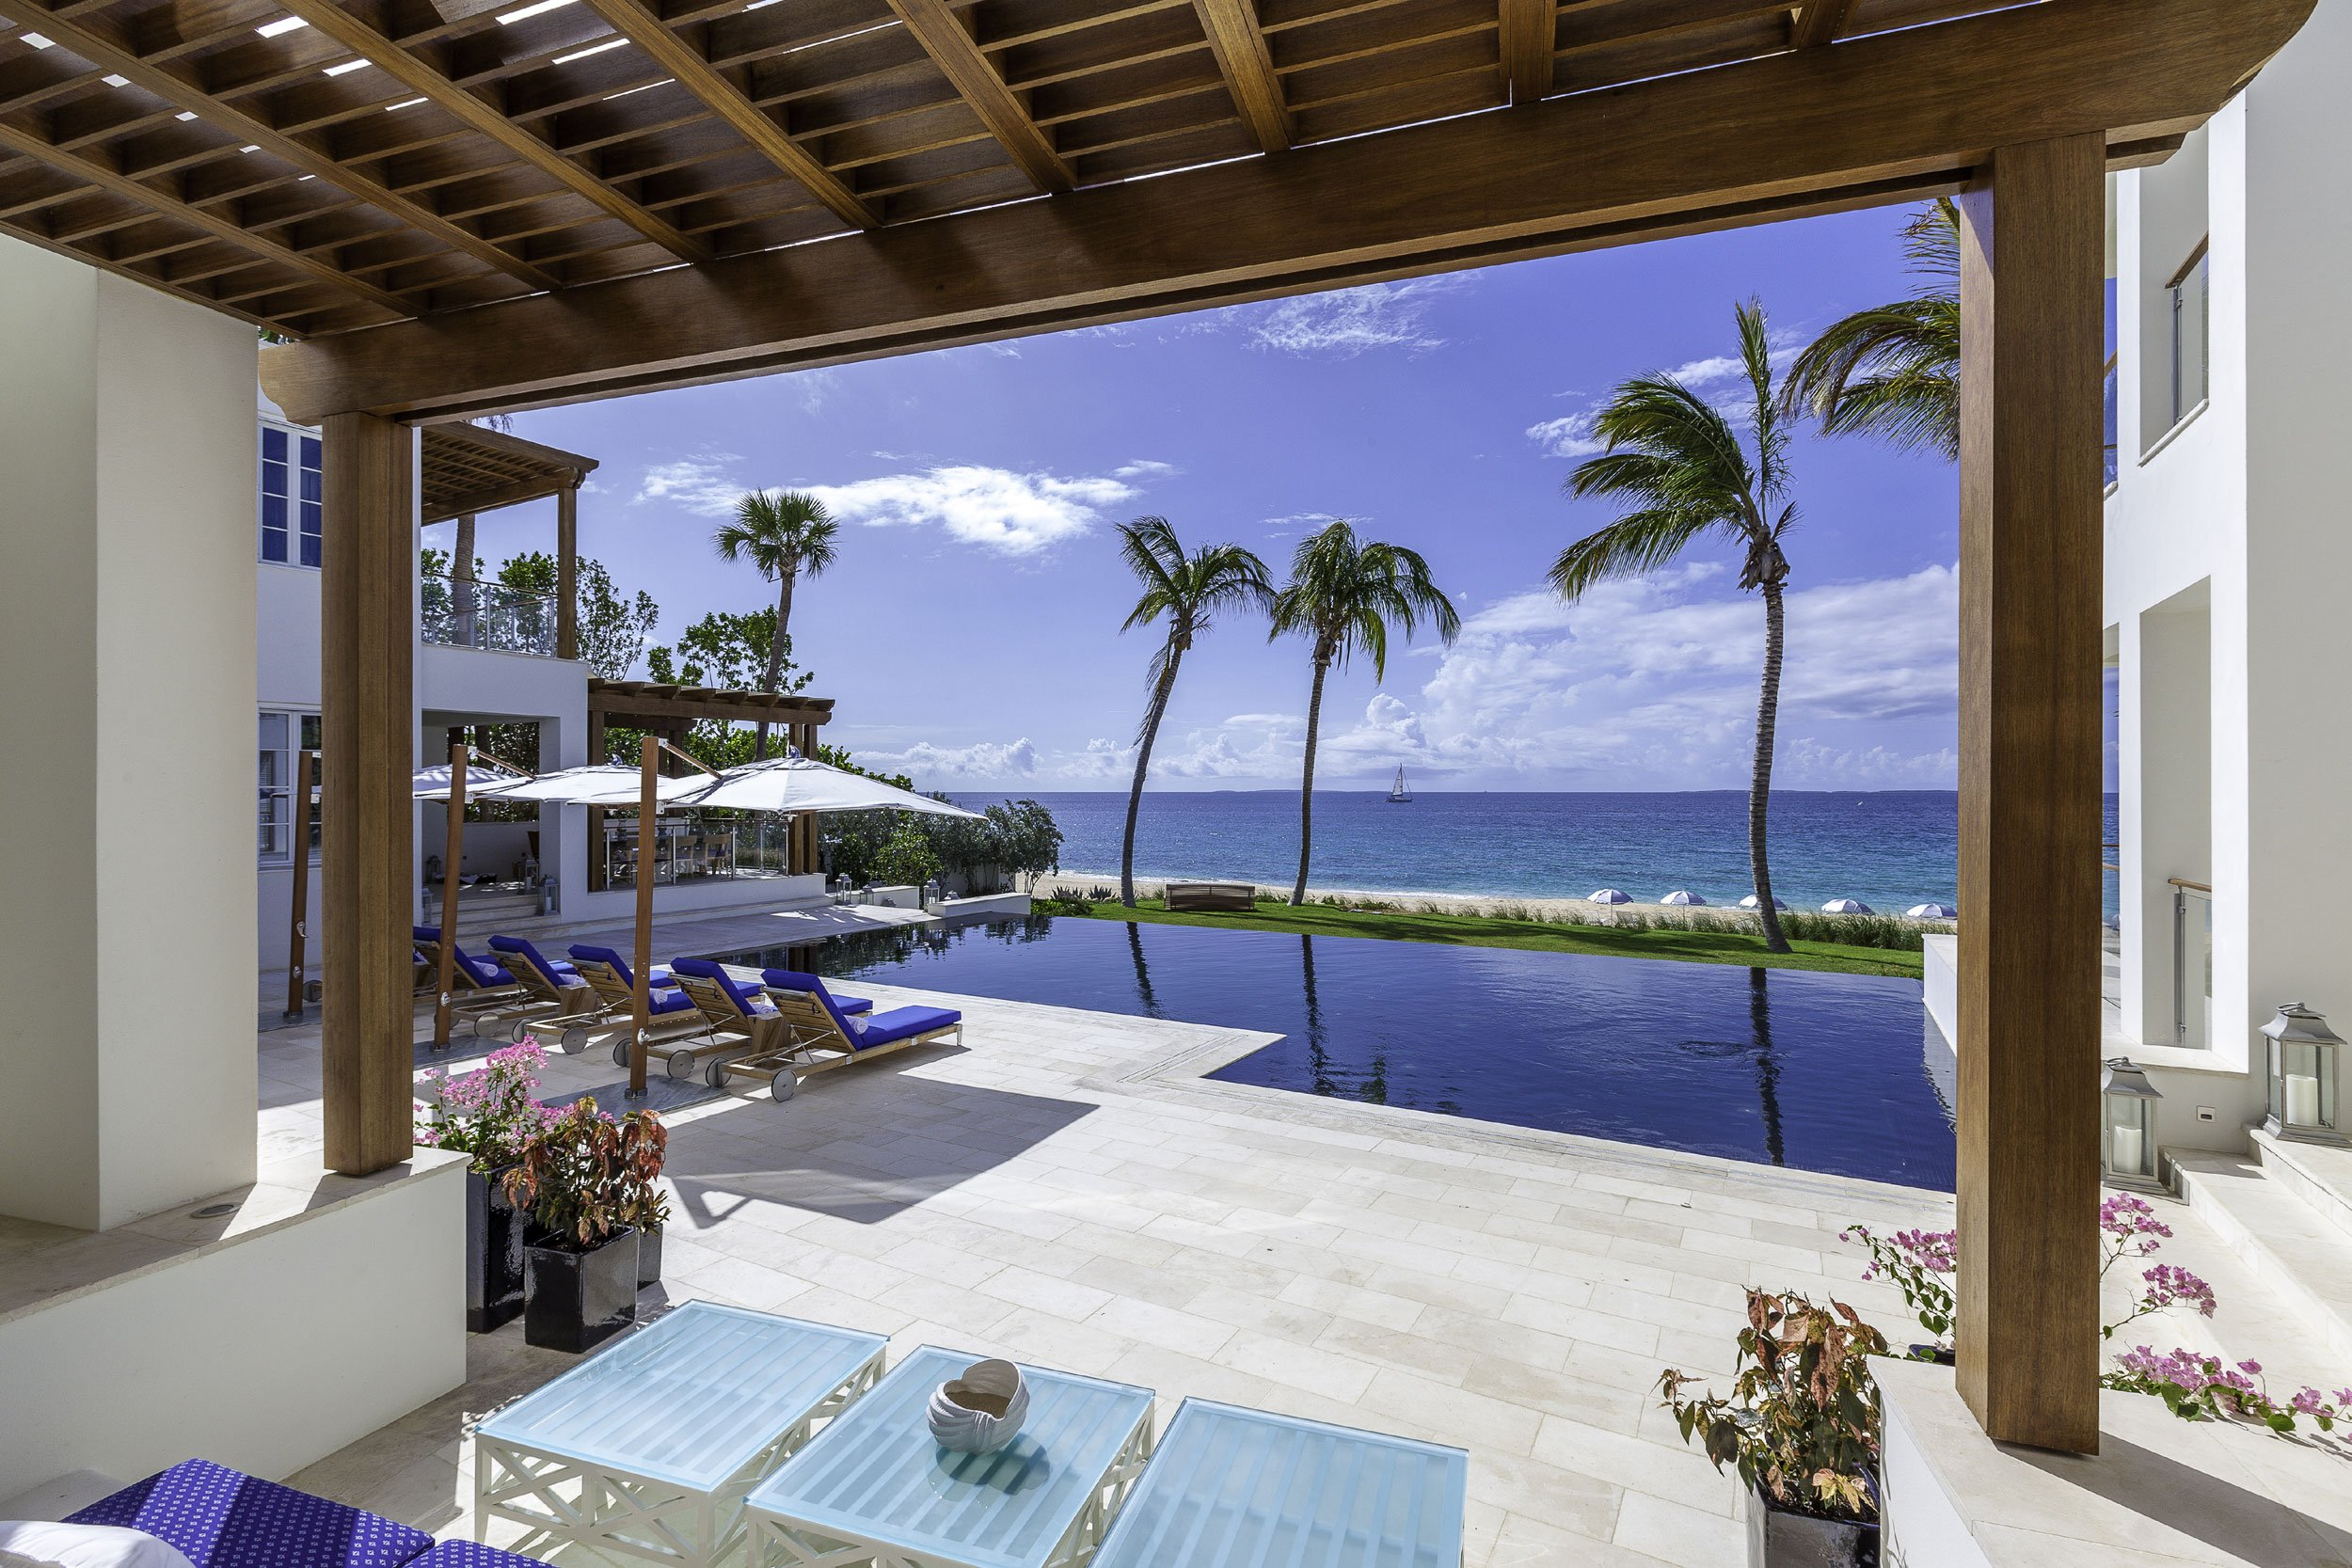 One of the most luxurious and exclusive beachfront properties in the Caribbean, Cerulean Villa rests amid tropical gardens on a secluded stretch of beachfront on Barnes Bay in Anguilla.